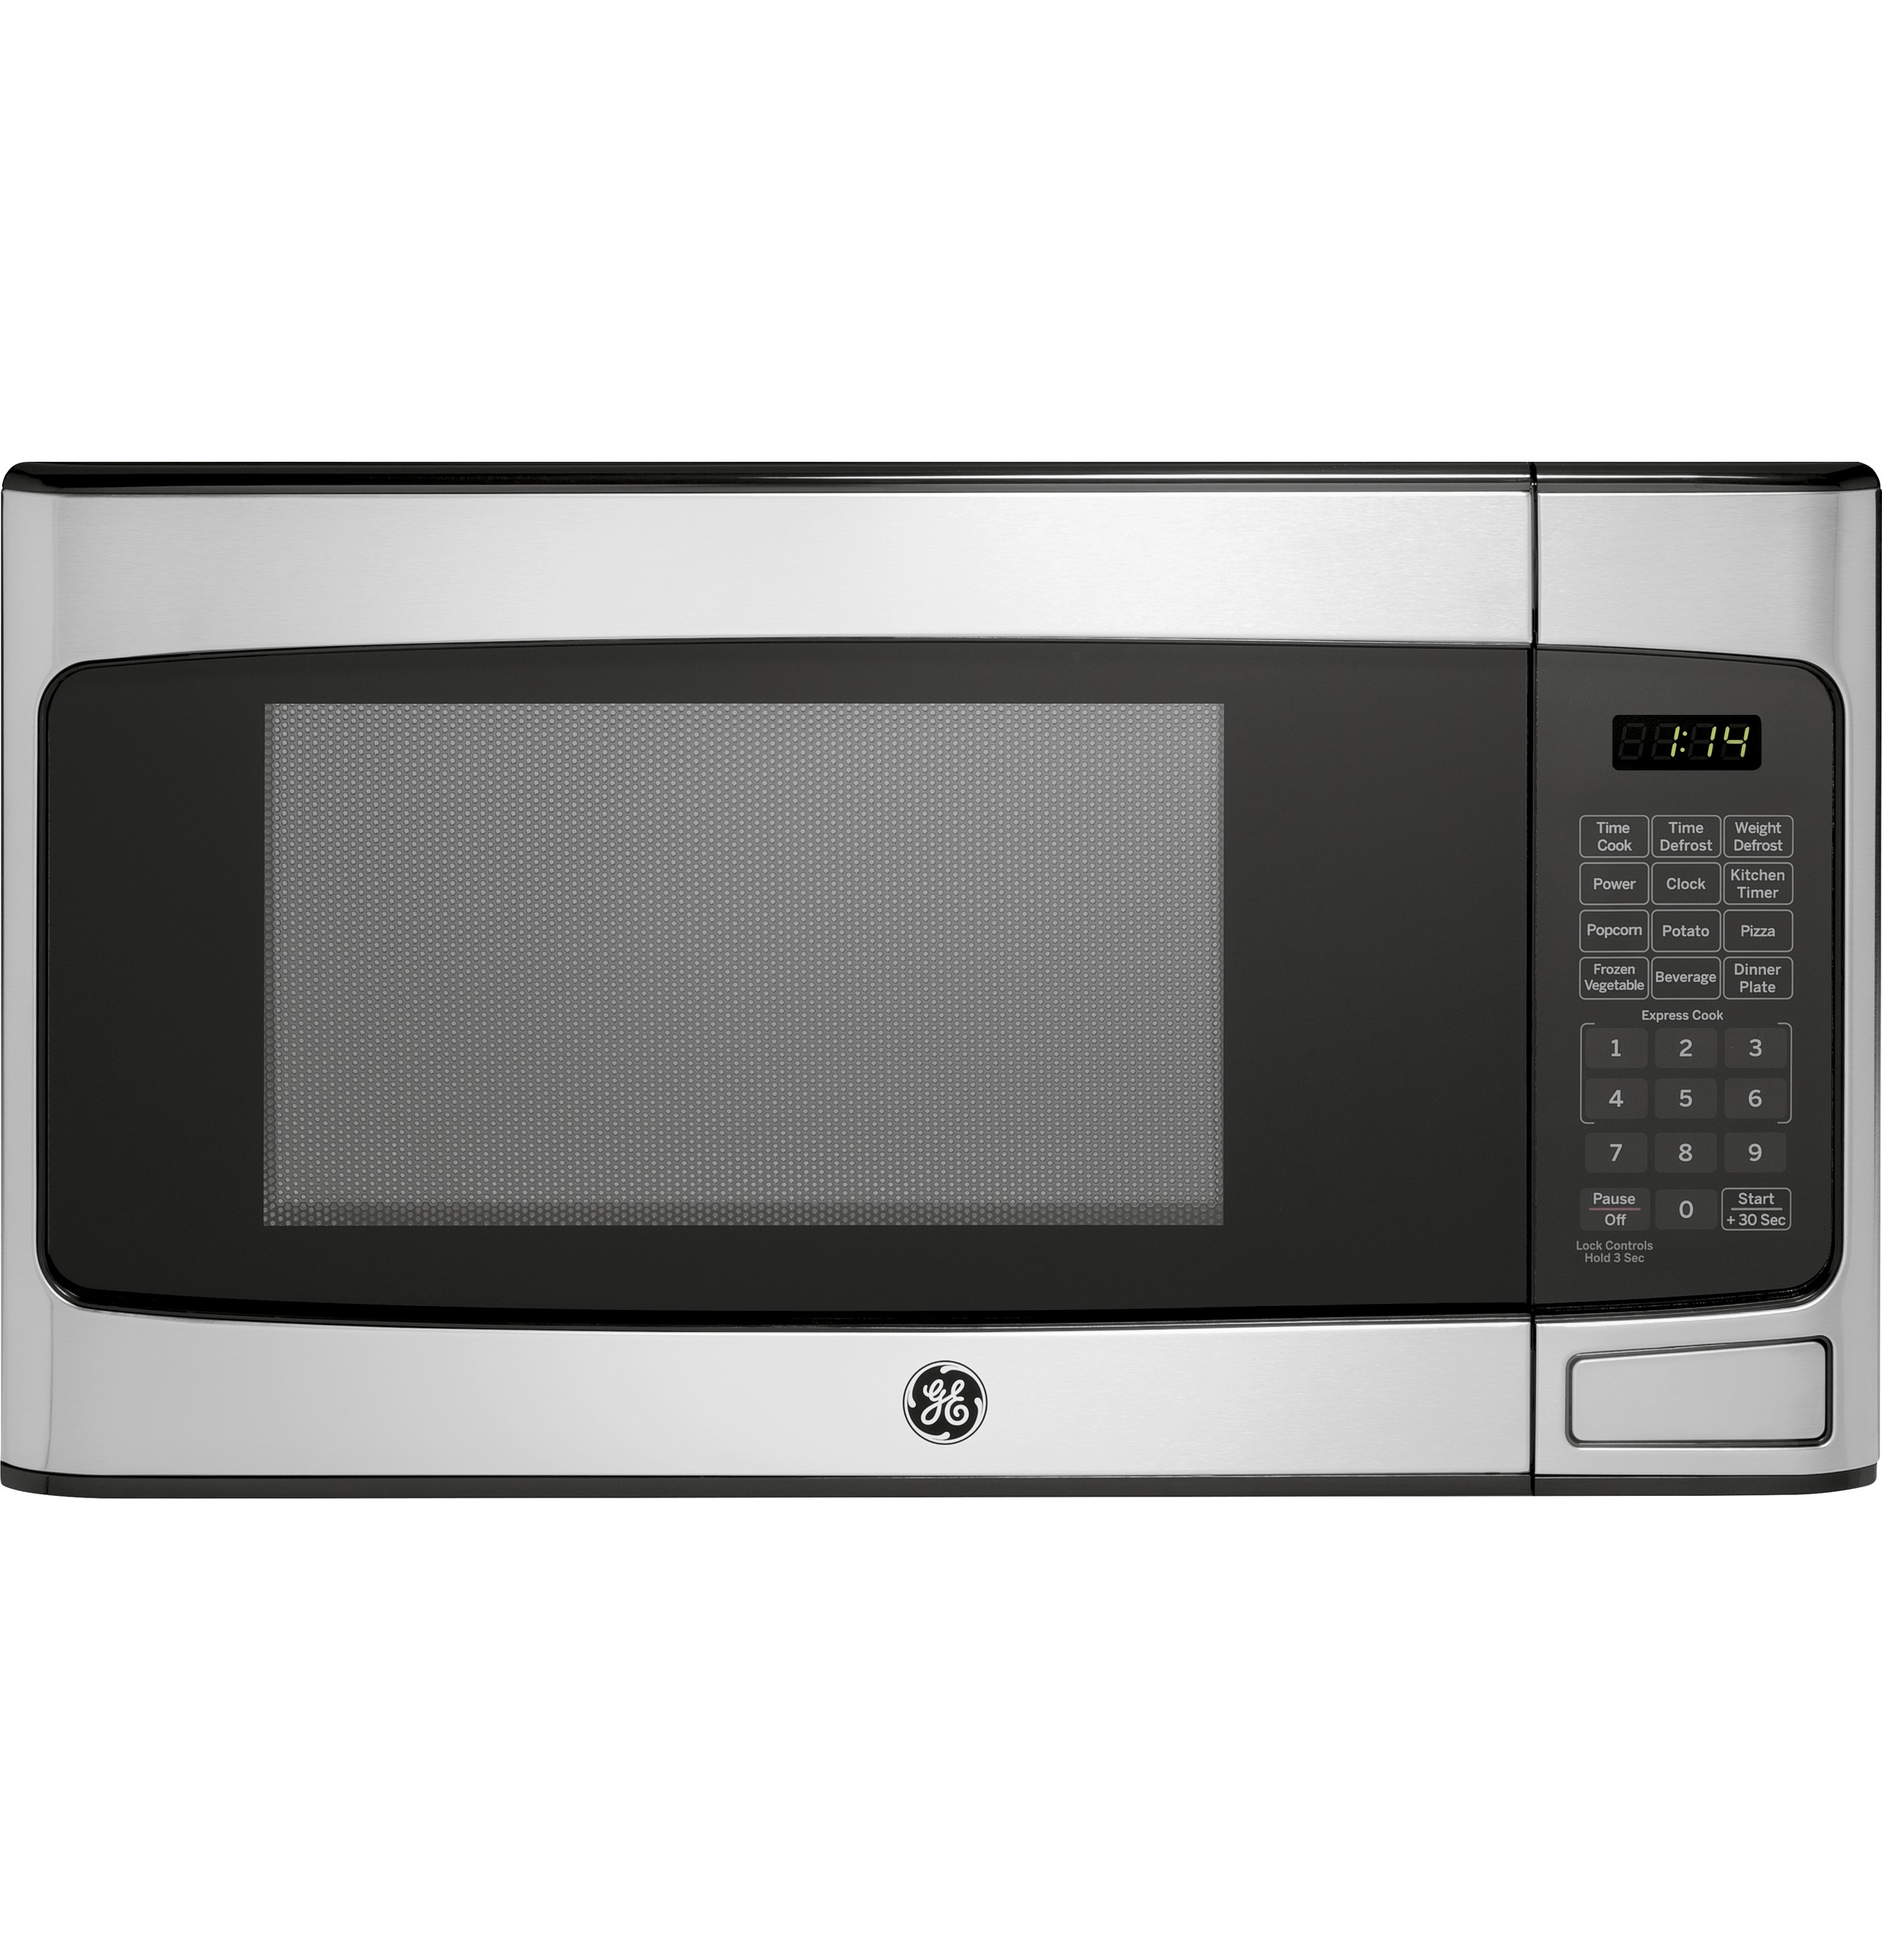 general electric 1 1 cu ft countertop stainless steel microwave oven walmart com